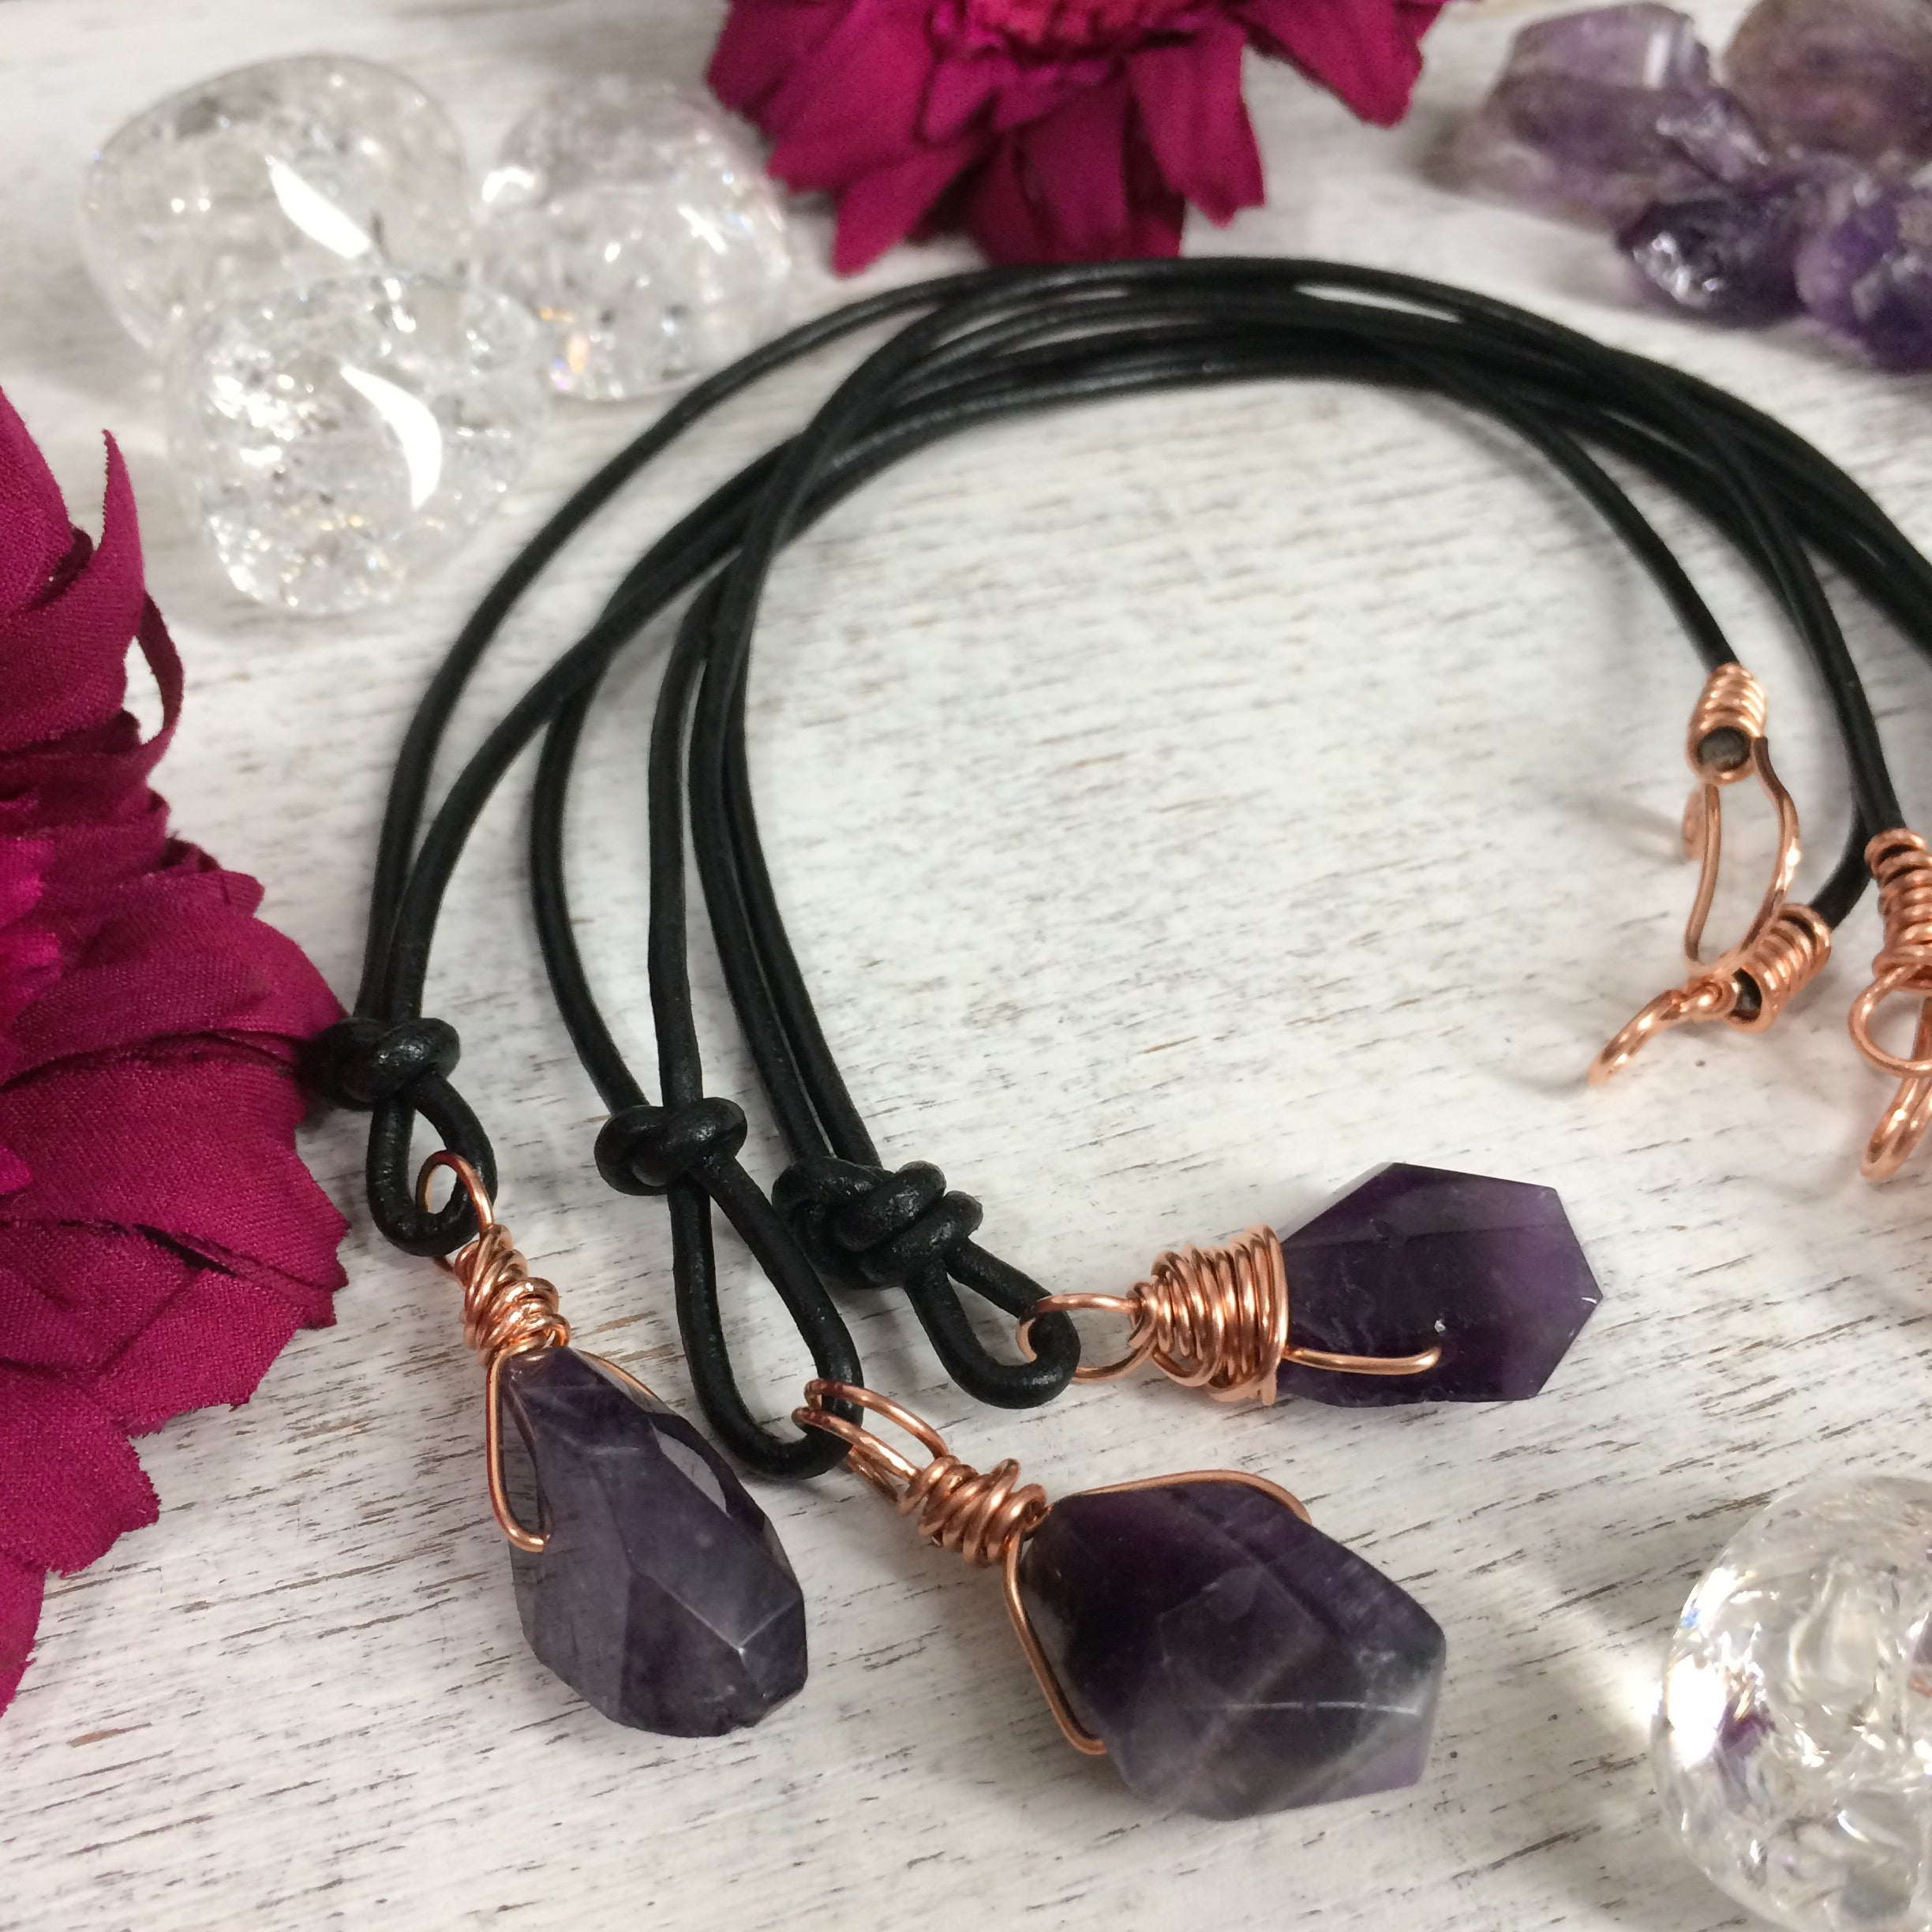 Amethyst & Leather Pendant Choker Necklace. February Birthstone Mens or Womens - claritycove.com